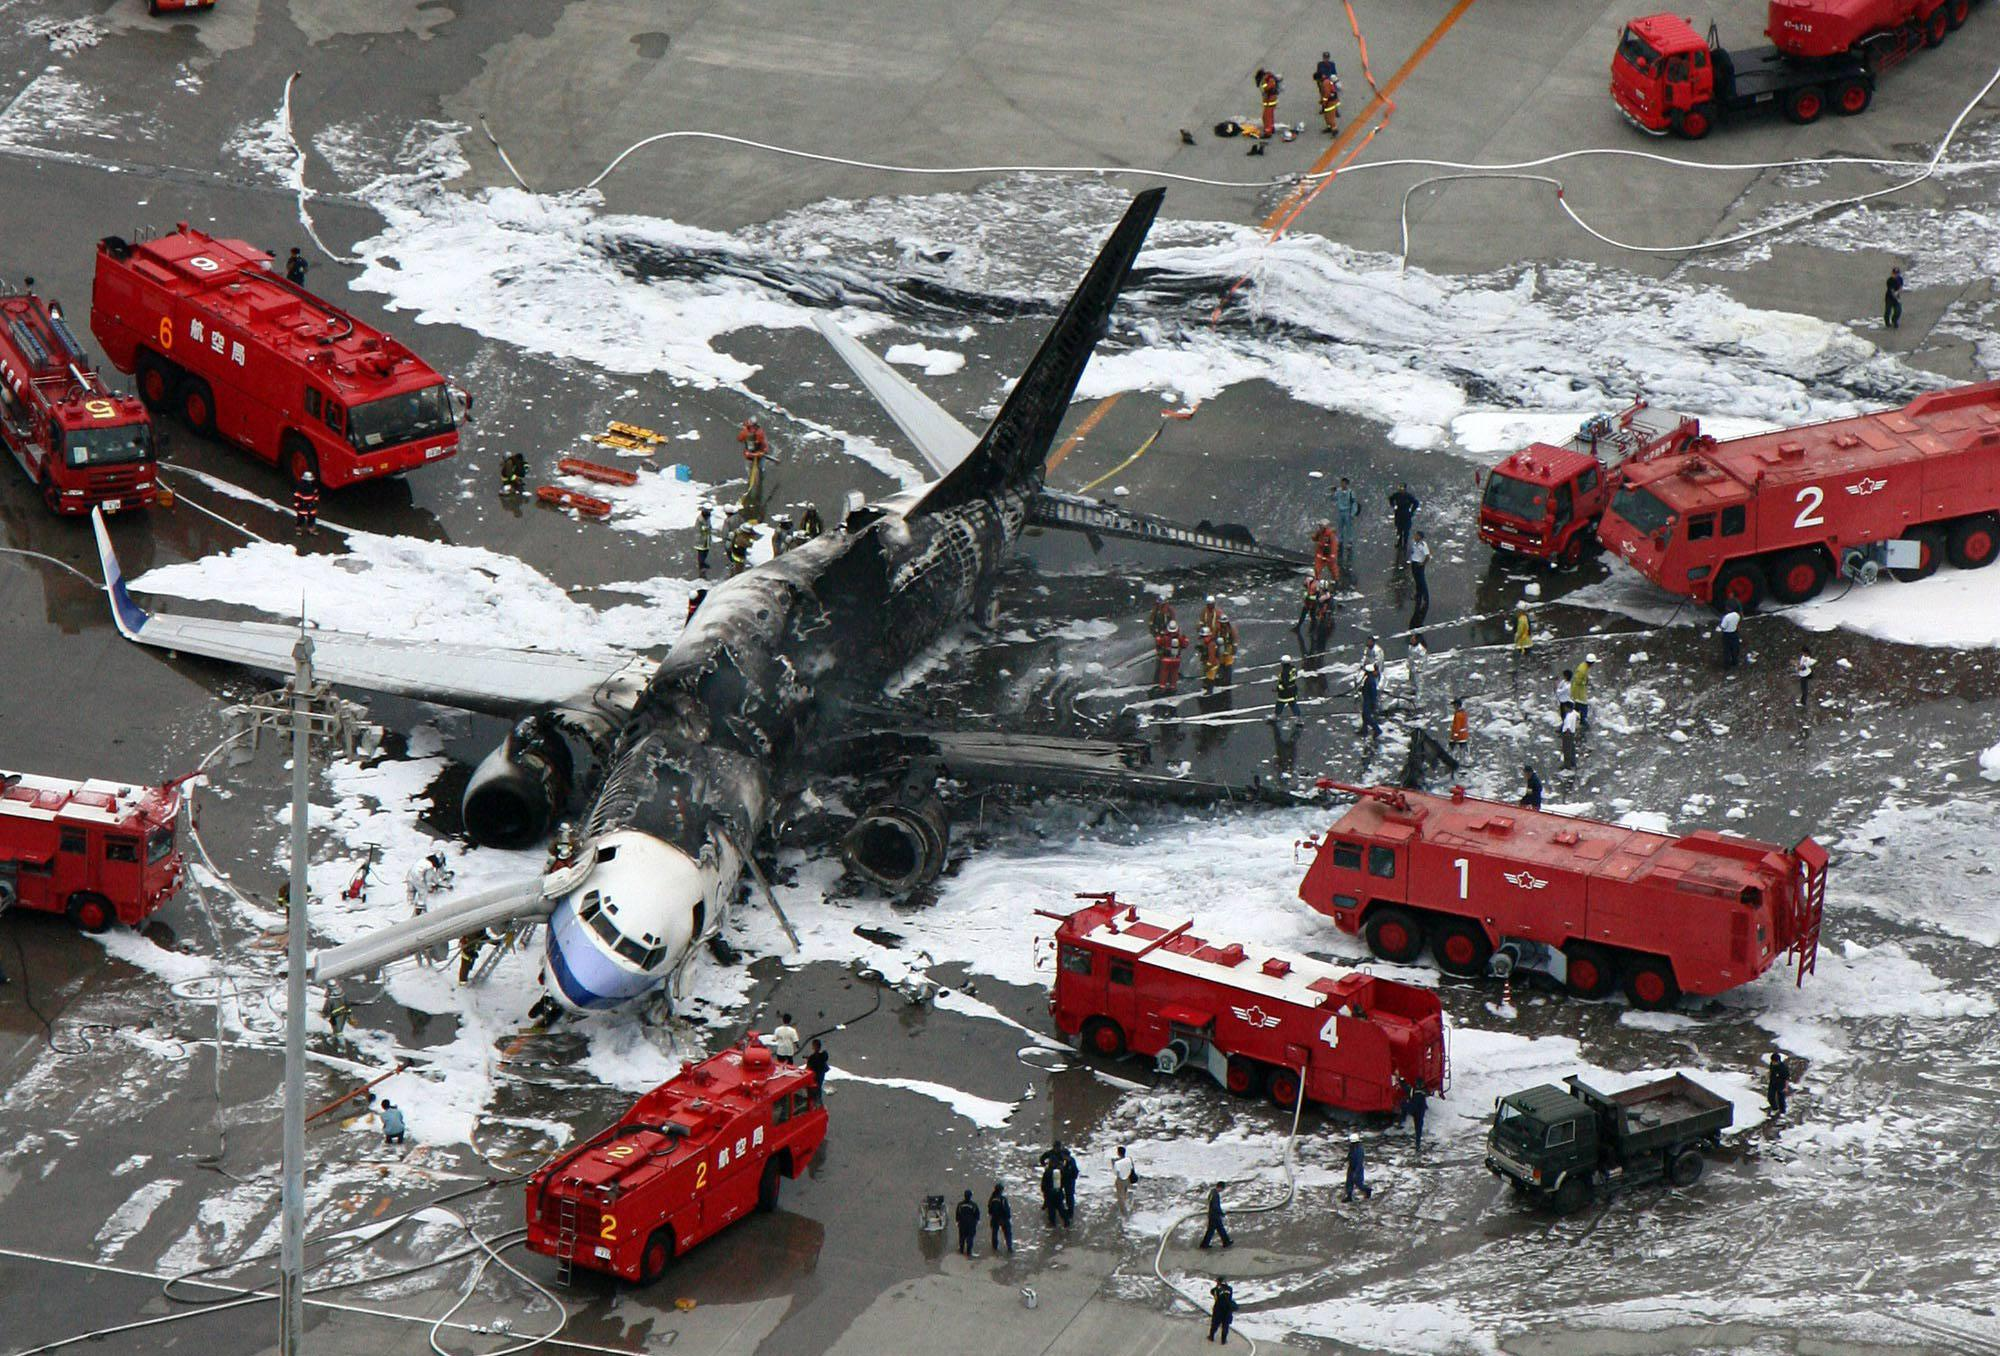 China Airlines Crash Japan August 2007